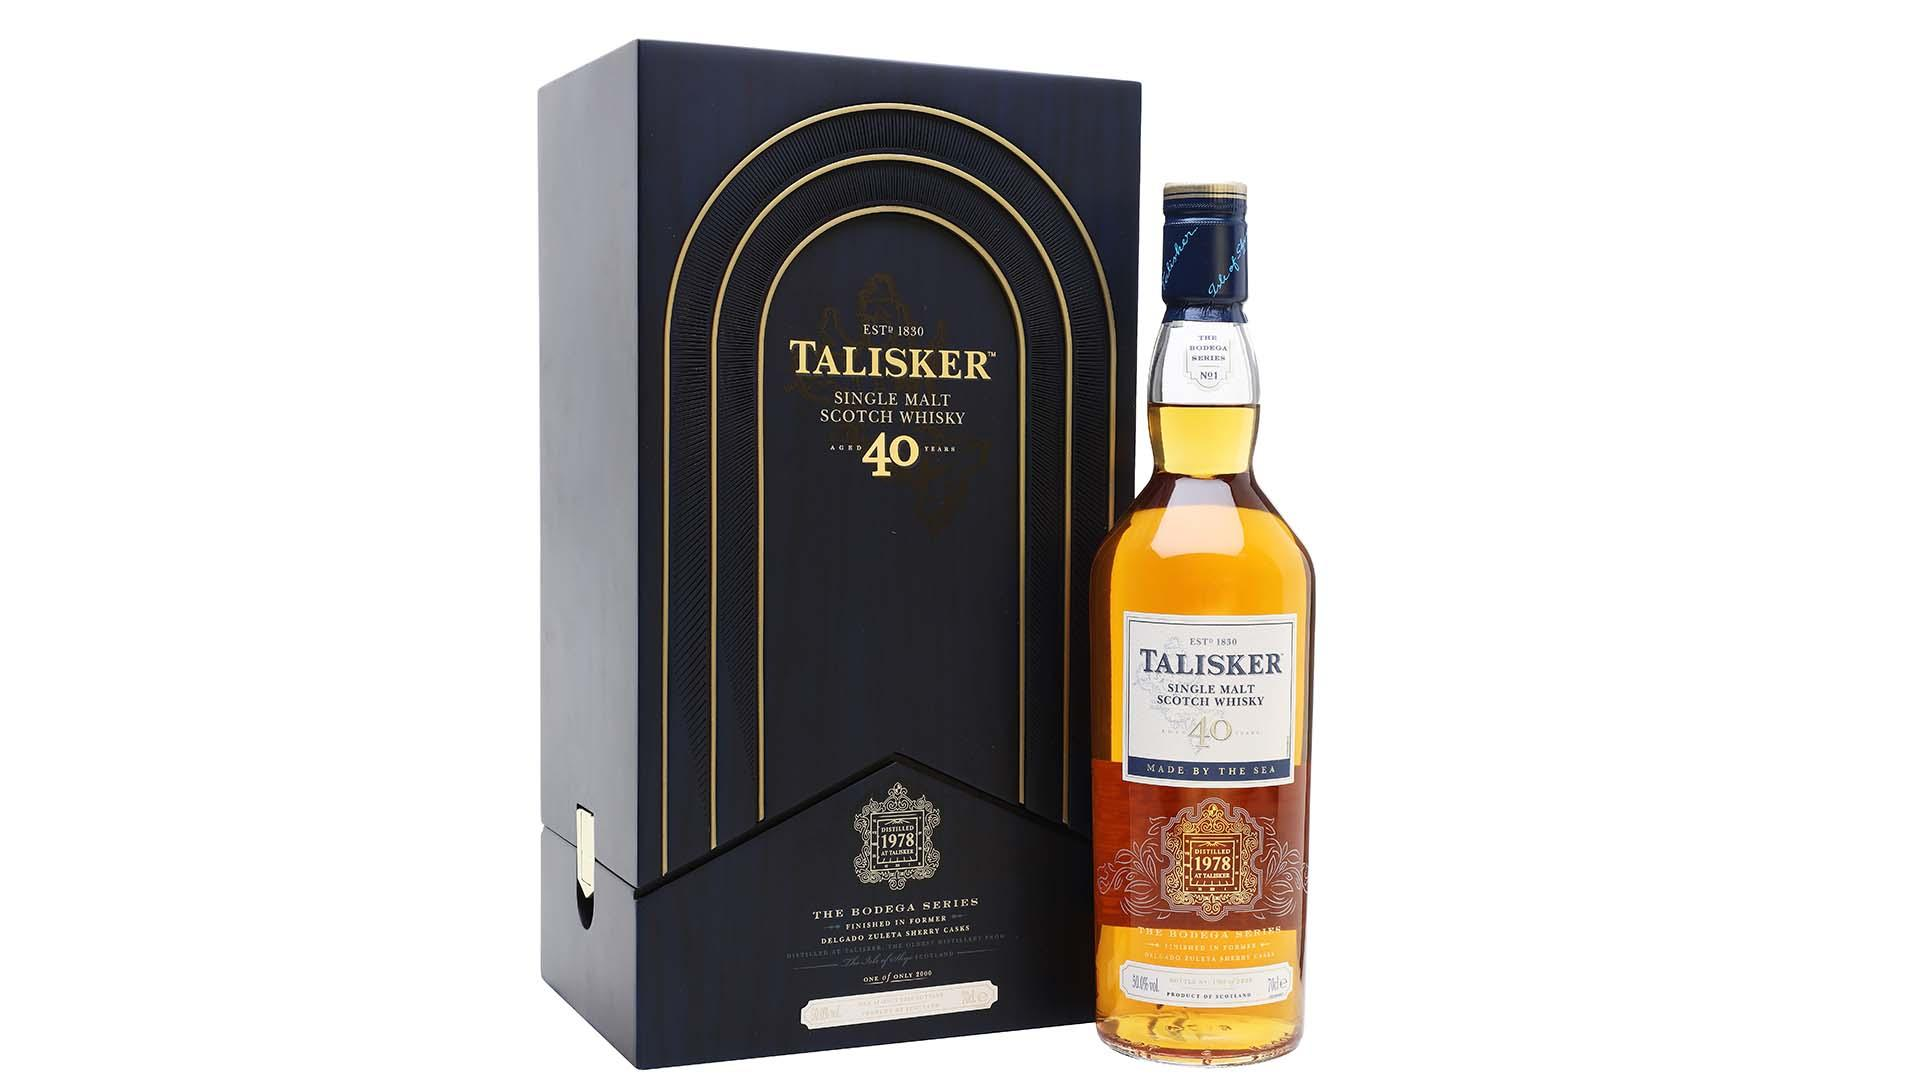 Talisker 1978 | 40 Year Old Bodega Series